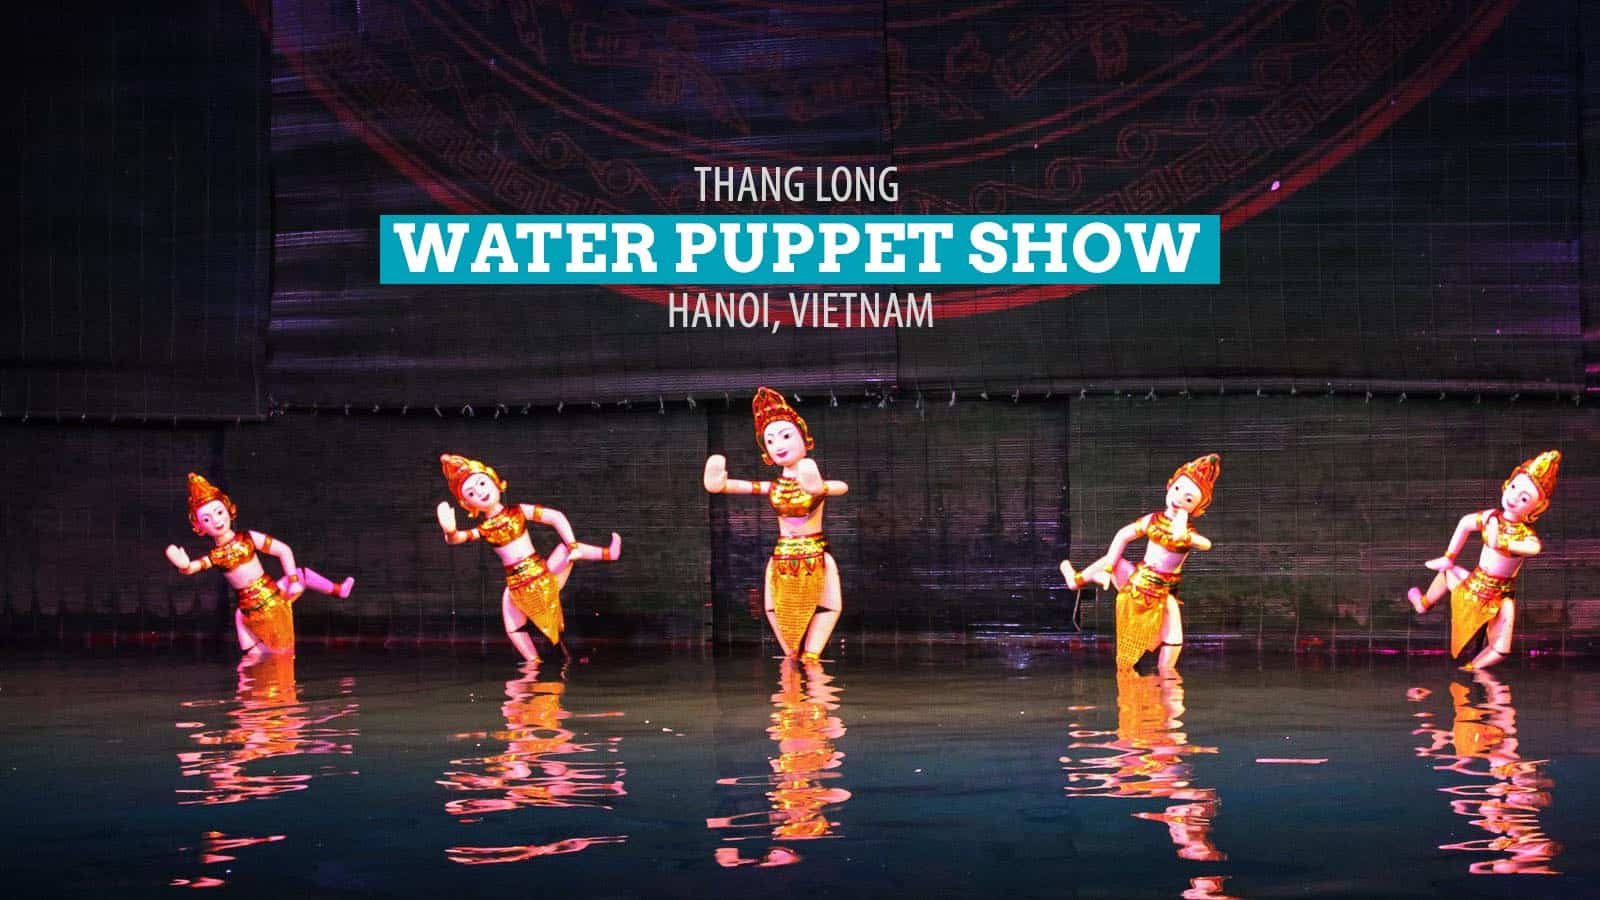 The Thang Long Water Puppet Show in Hanoi, Vietnam